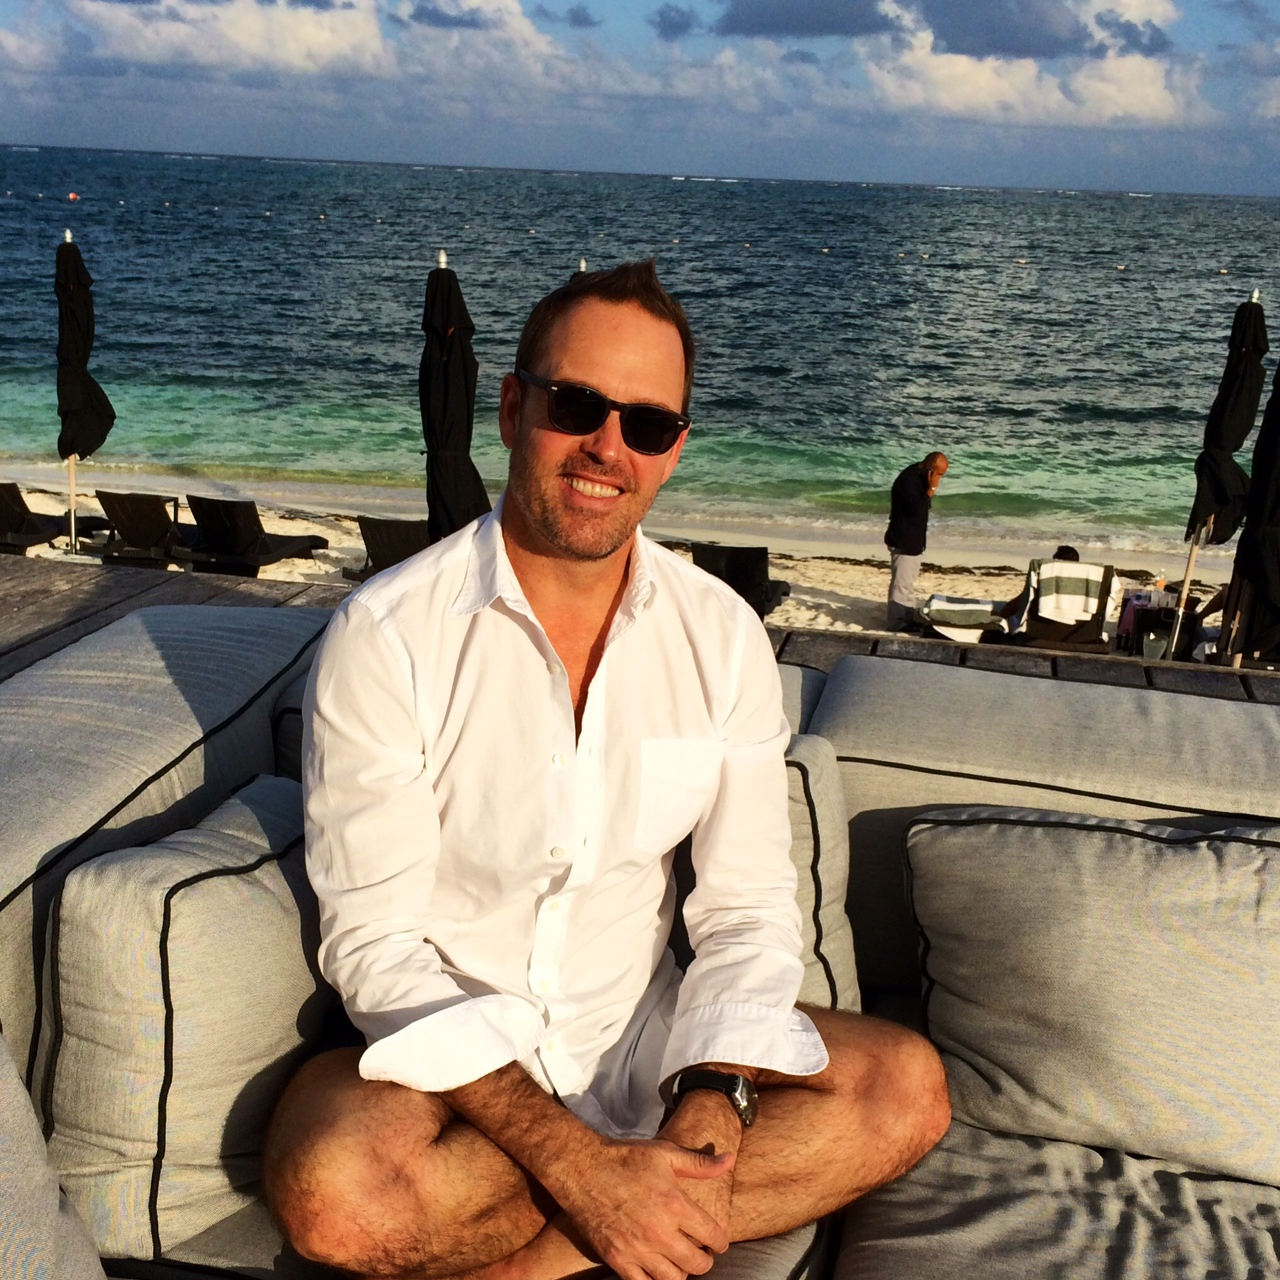 Cancun never looked so good! Read about my weekend at Nizuc Resort & Spa.